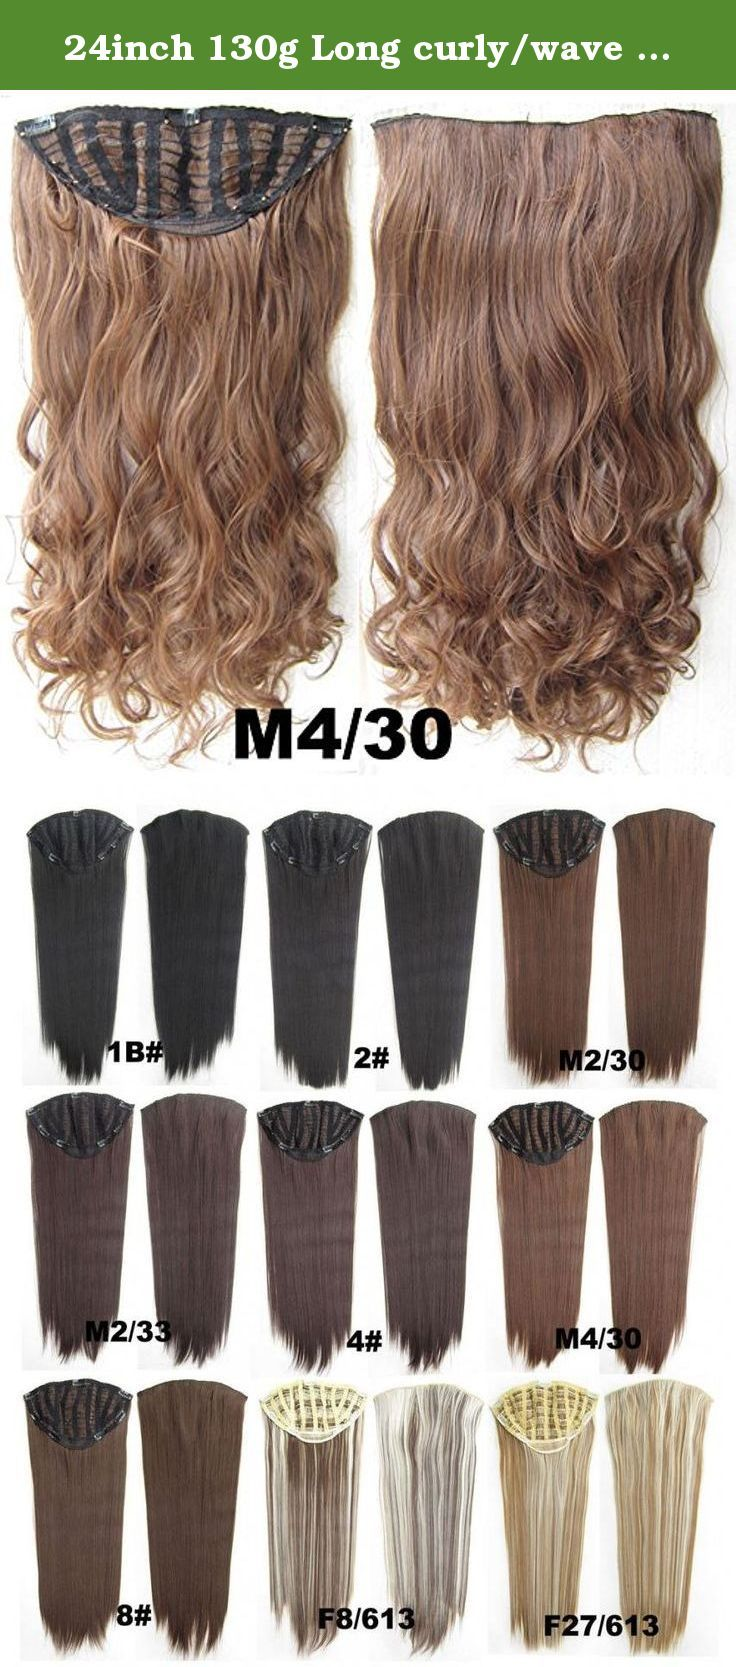 24inch 130g Long Curlywave Hair Extension Clip In Hair Extensions 7